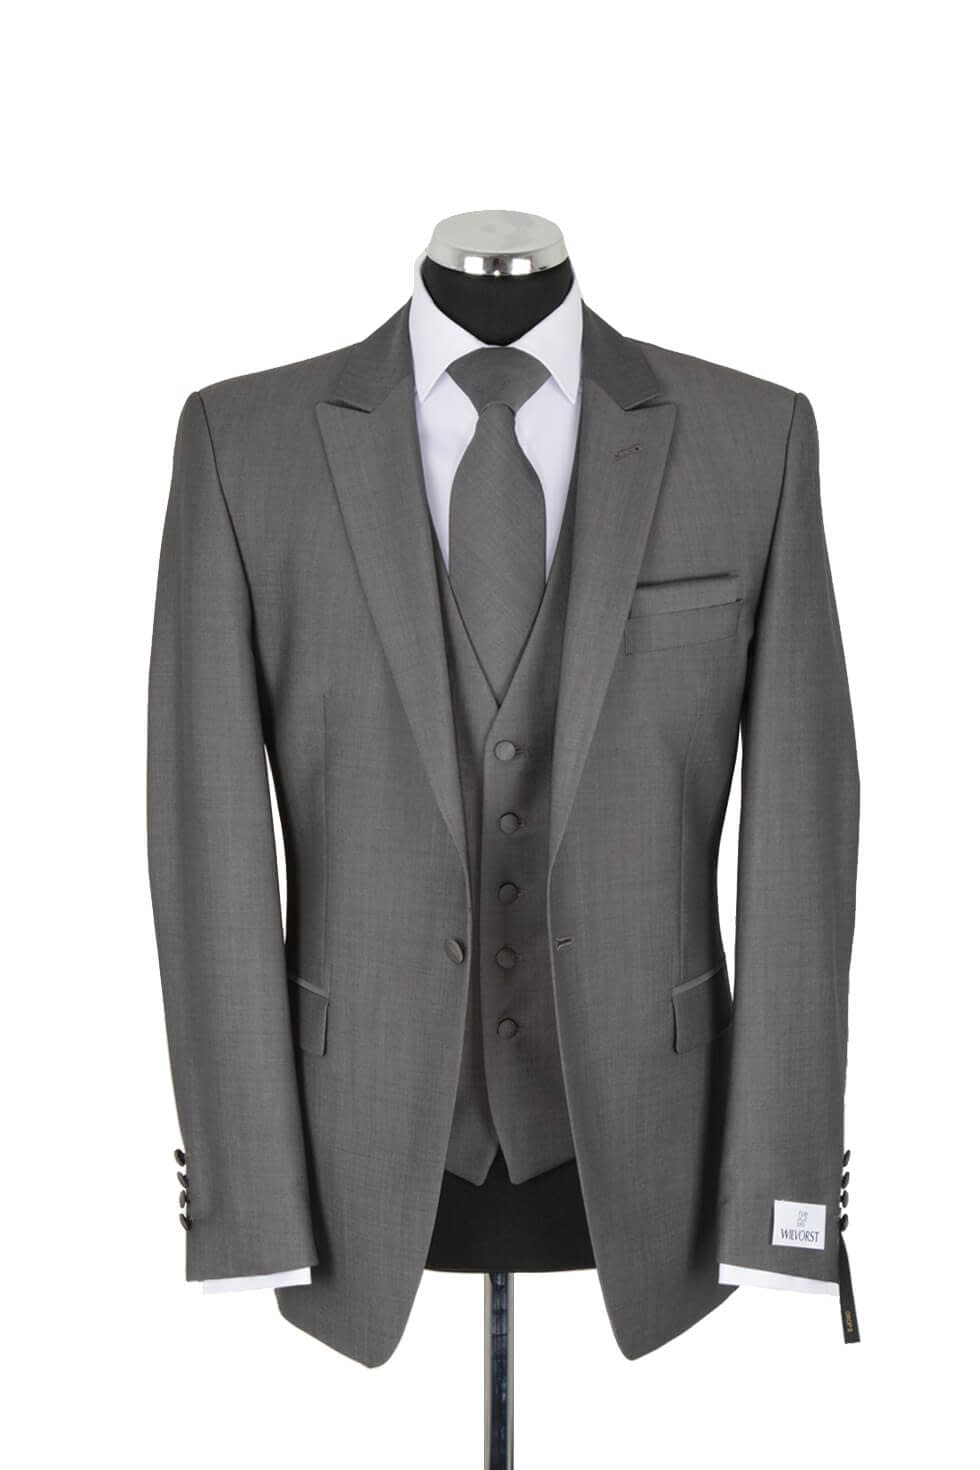 Wilvorst Three Piece Grey Lounge Suit